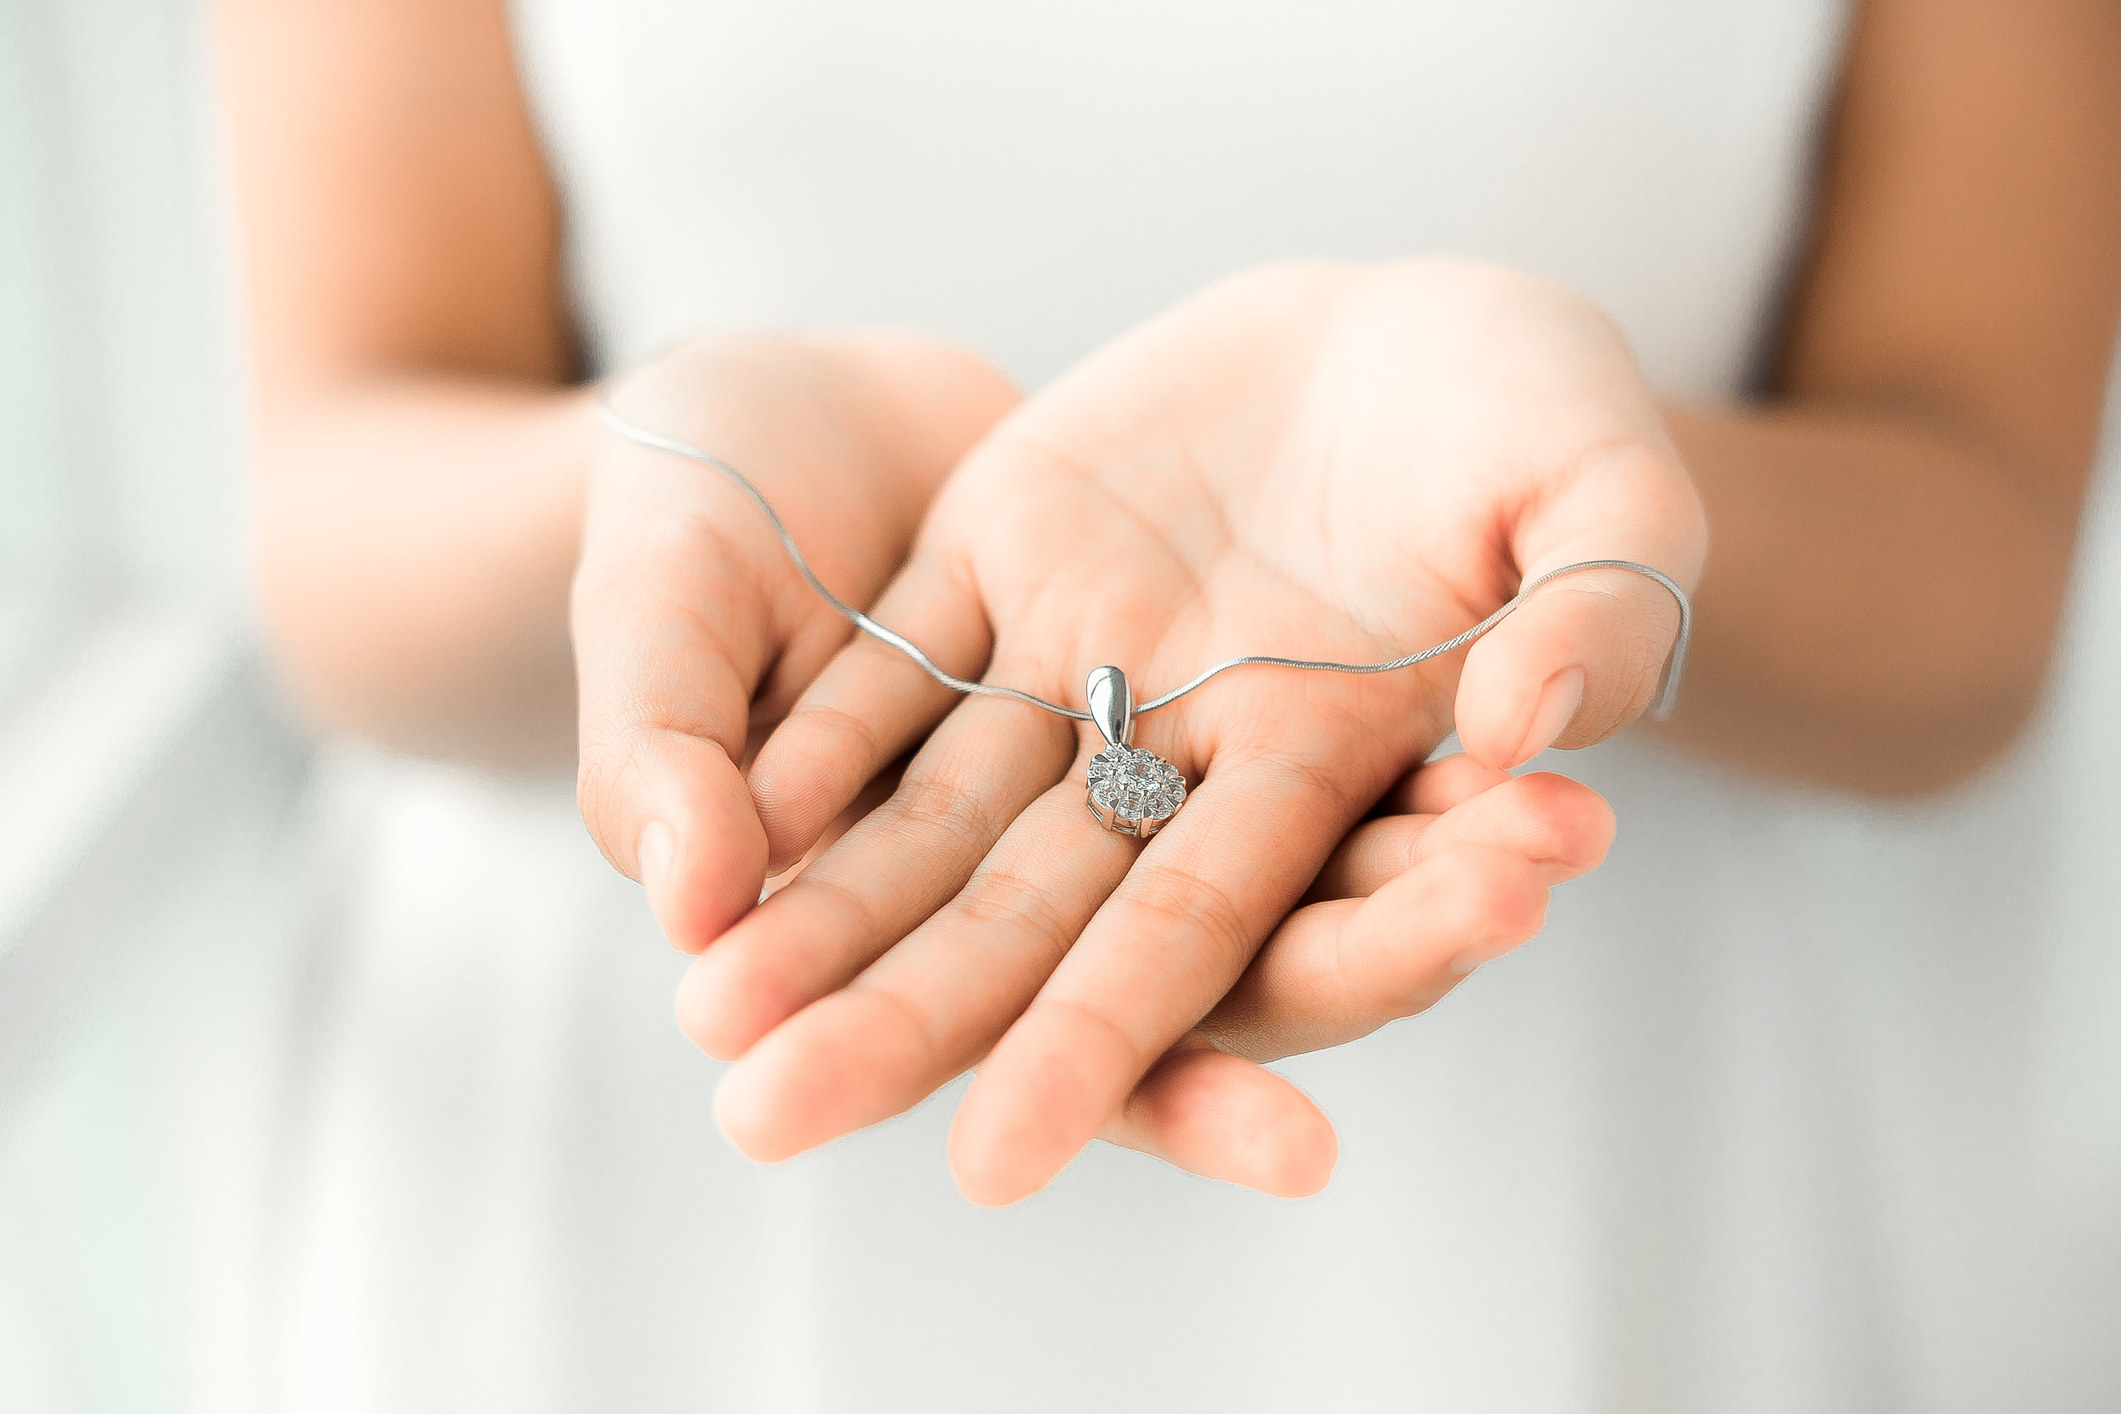 Person holding a necklace